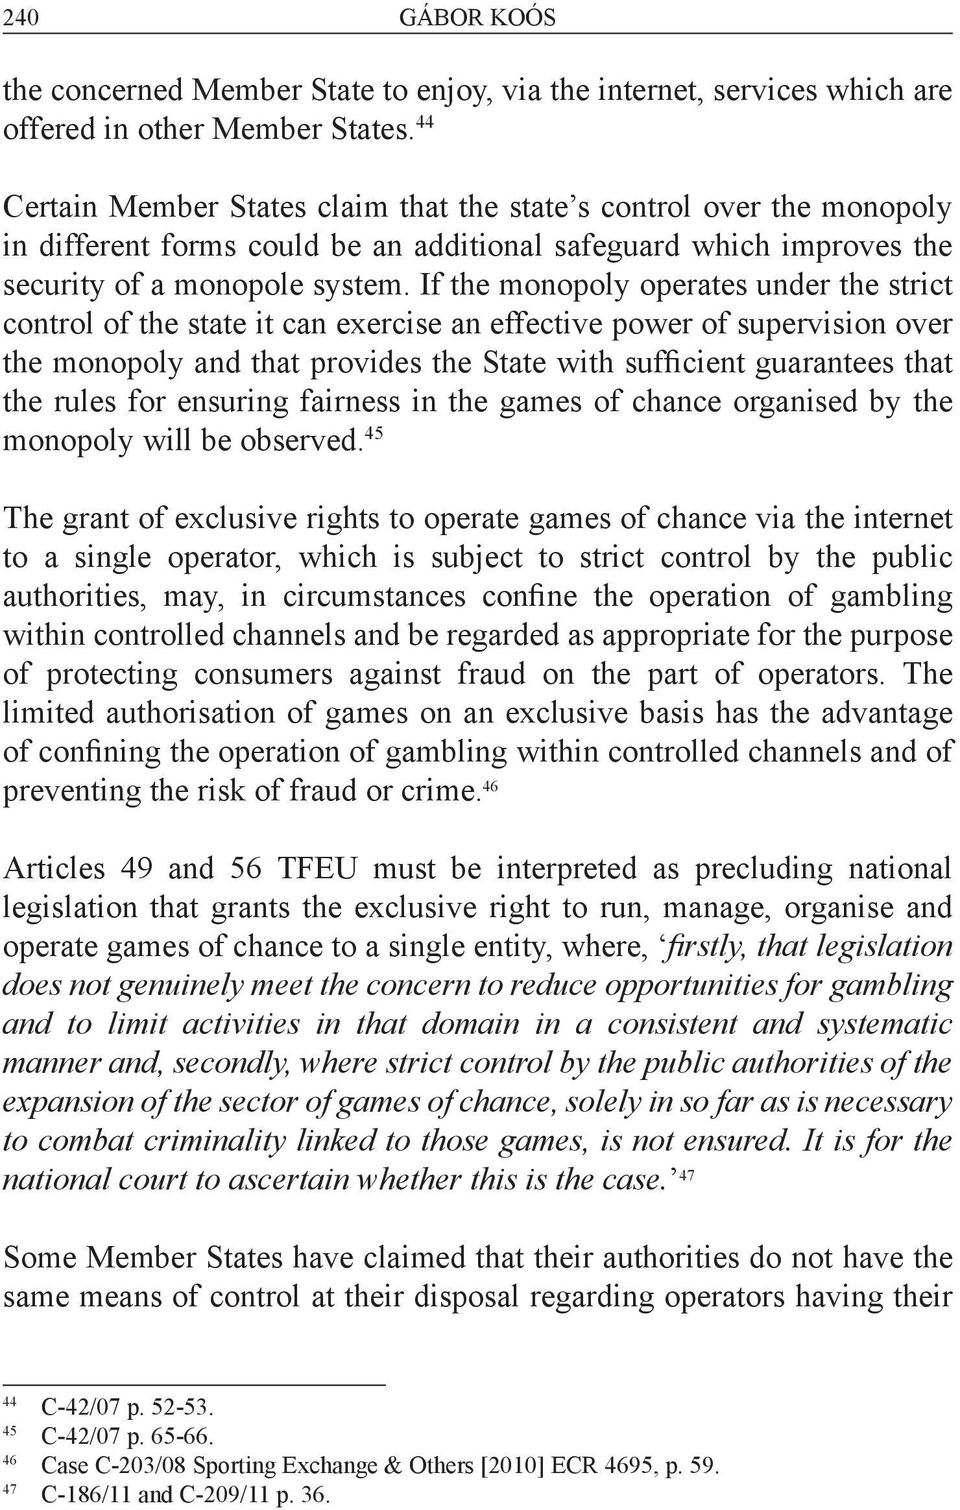 If the monopoly operates under the strict control of the state it can exercise an effective power of supervision over the monopoly and that provides the State with sufficient guarantees that the